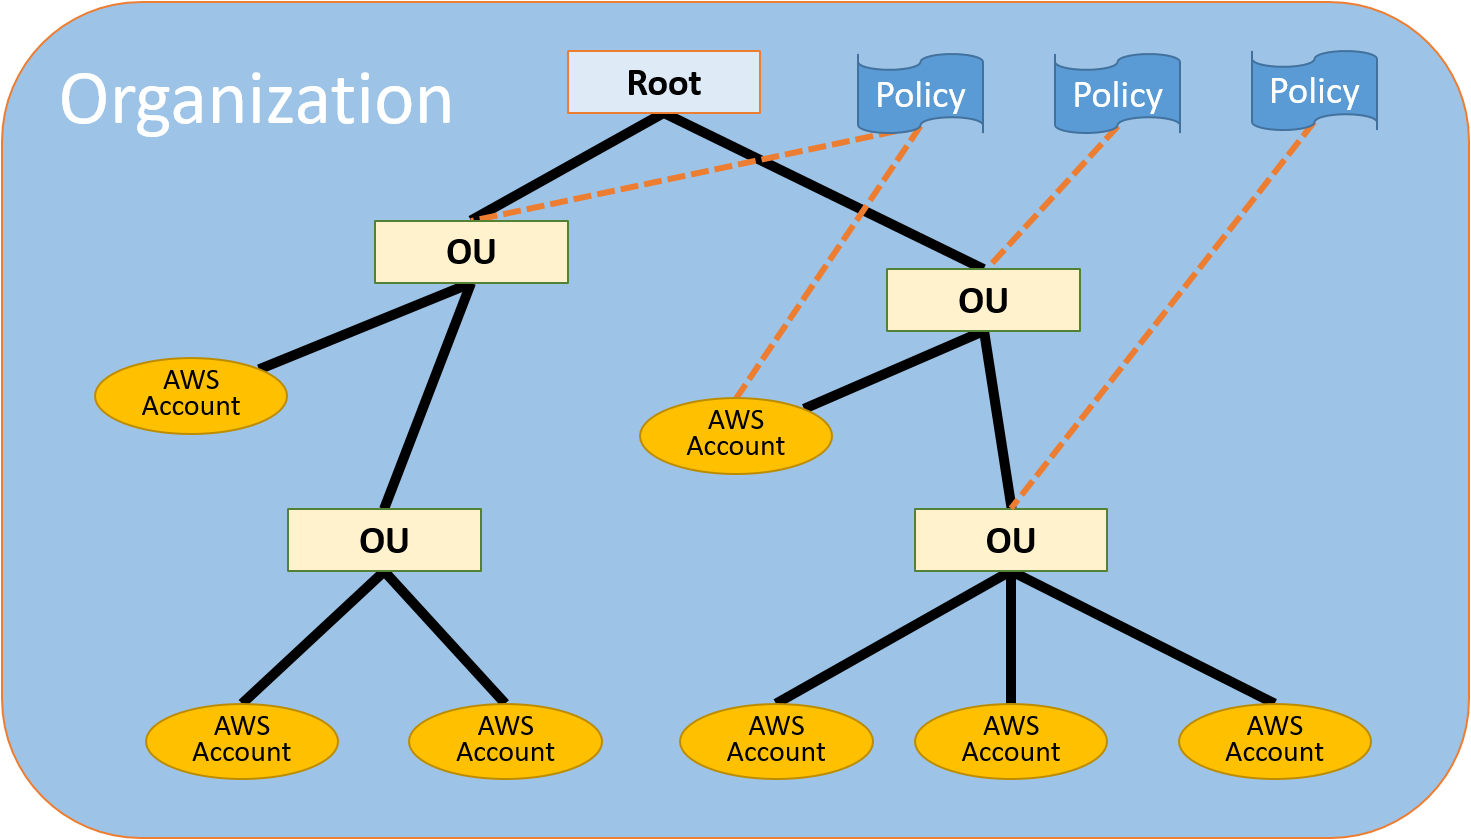 aws org structure